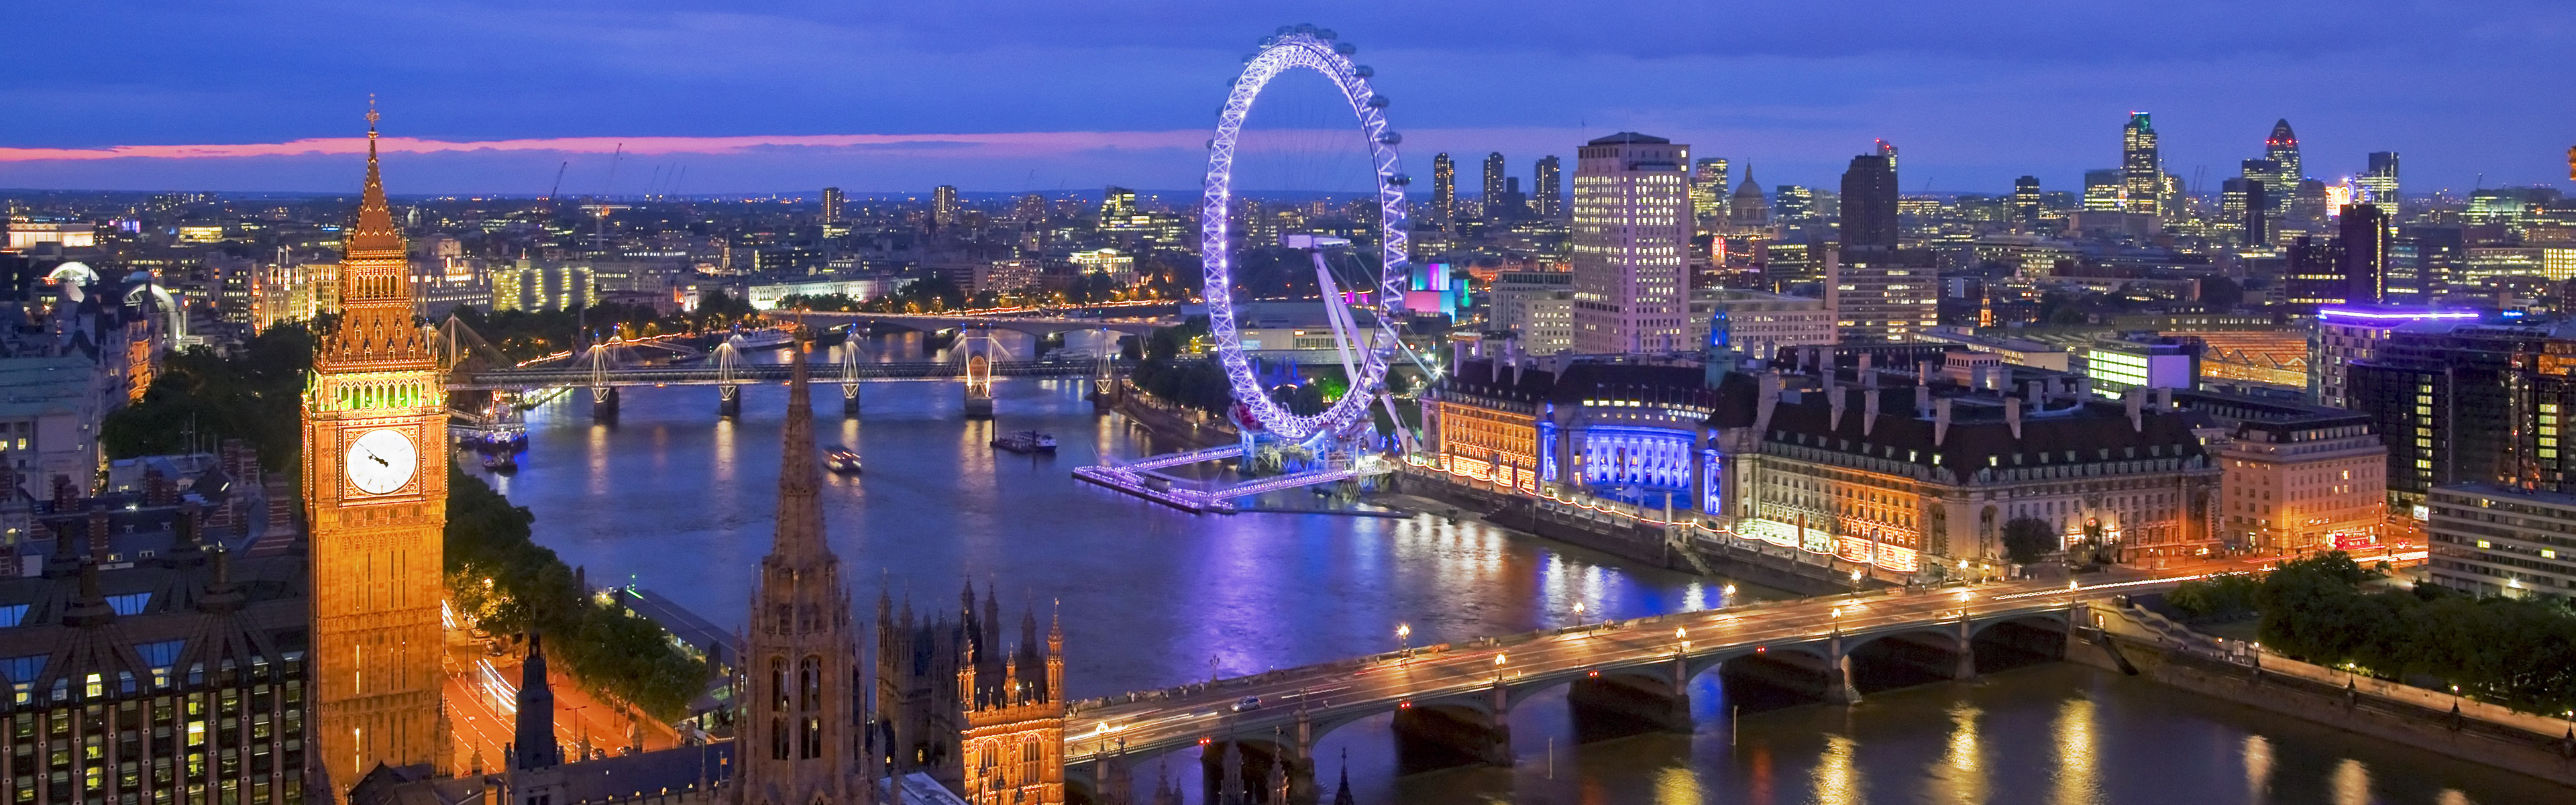 A panoramic image of London